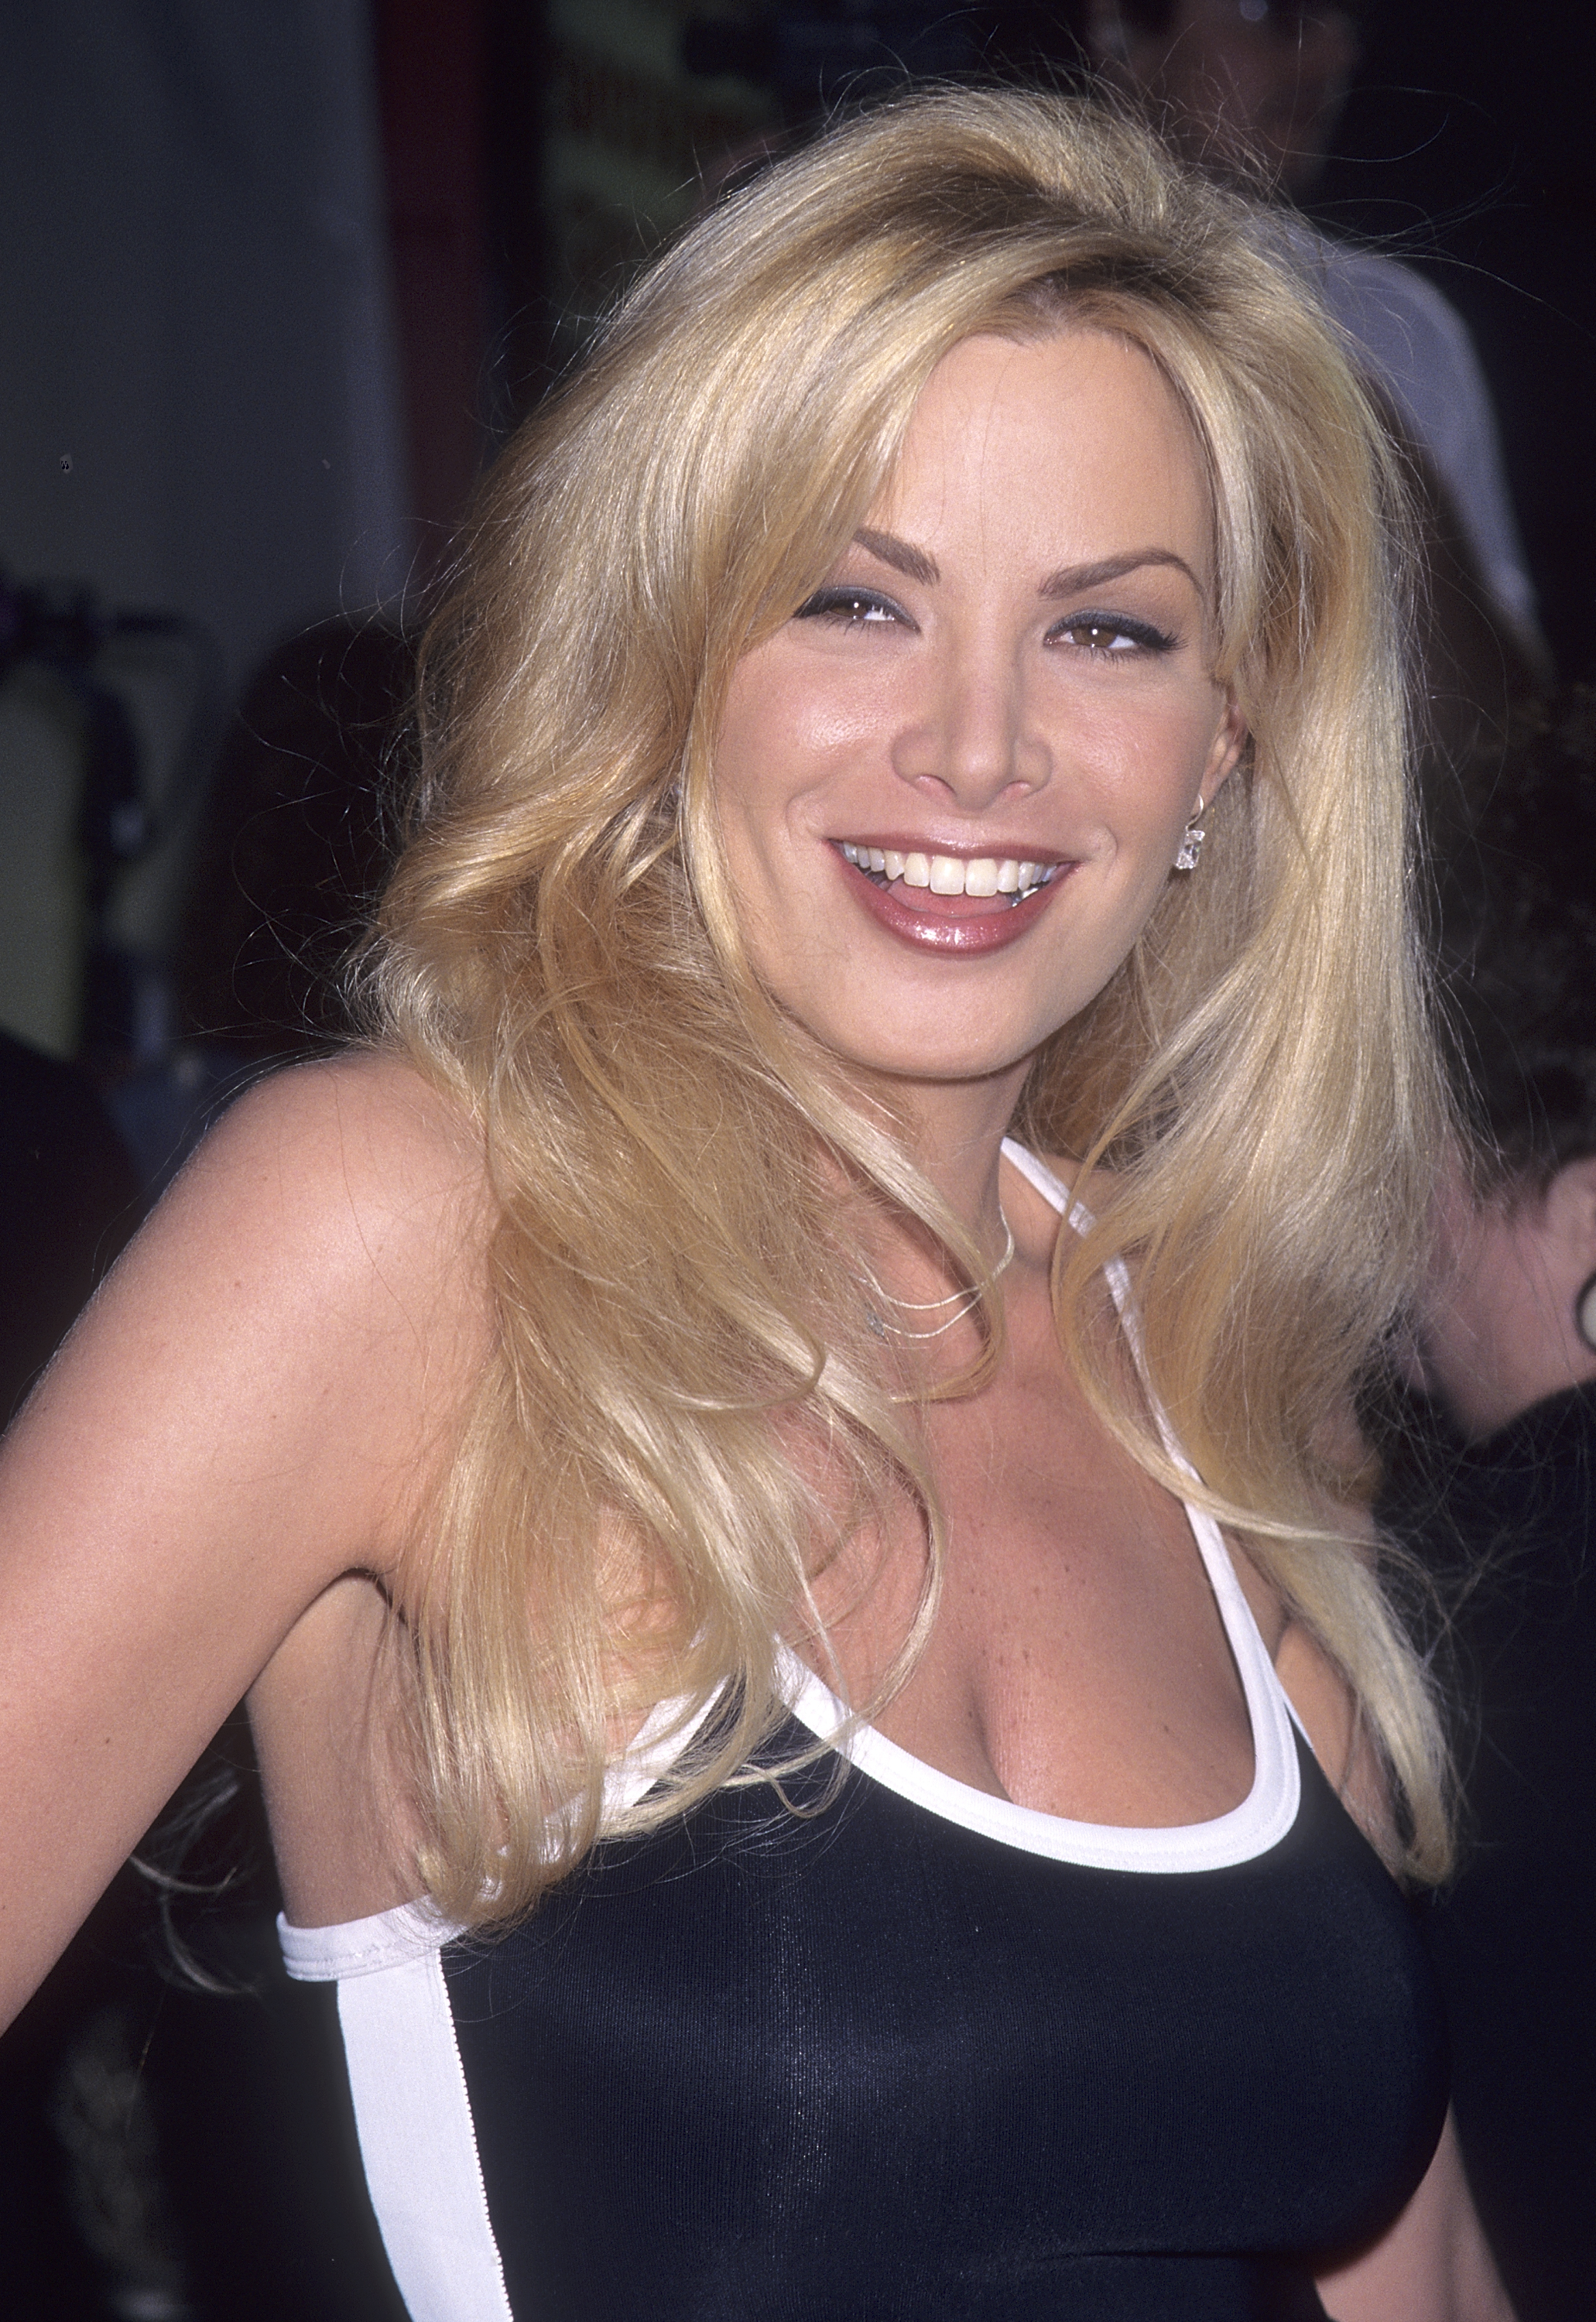 Cindy Margolis in 1997/Ron Galella/Getty Images